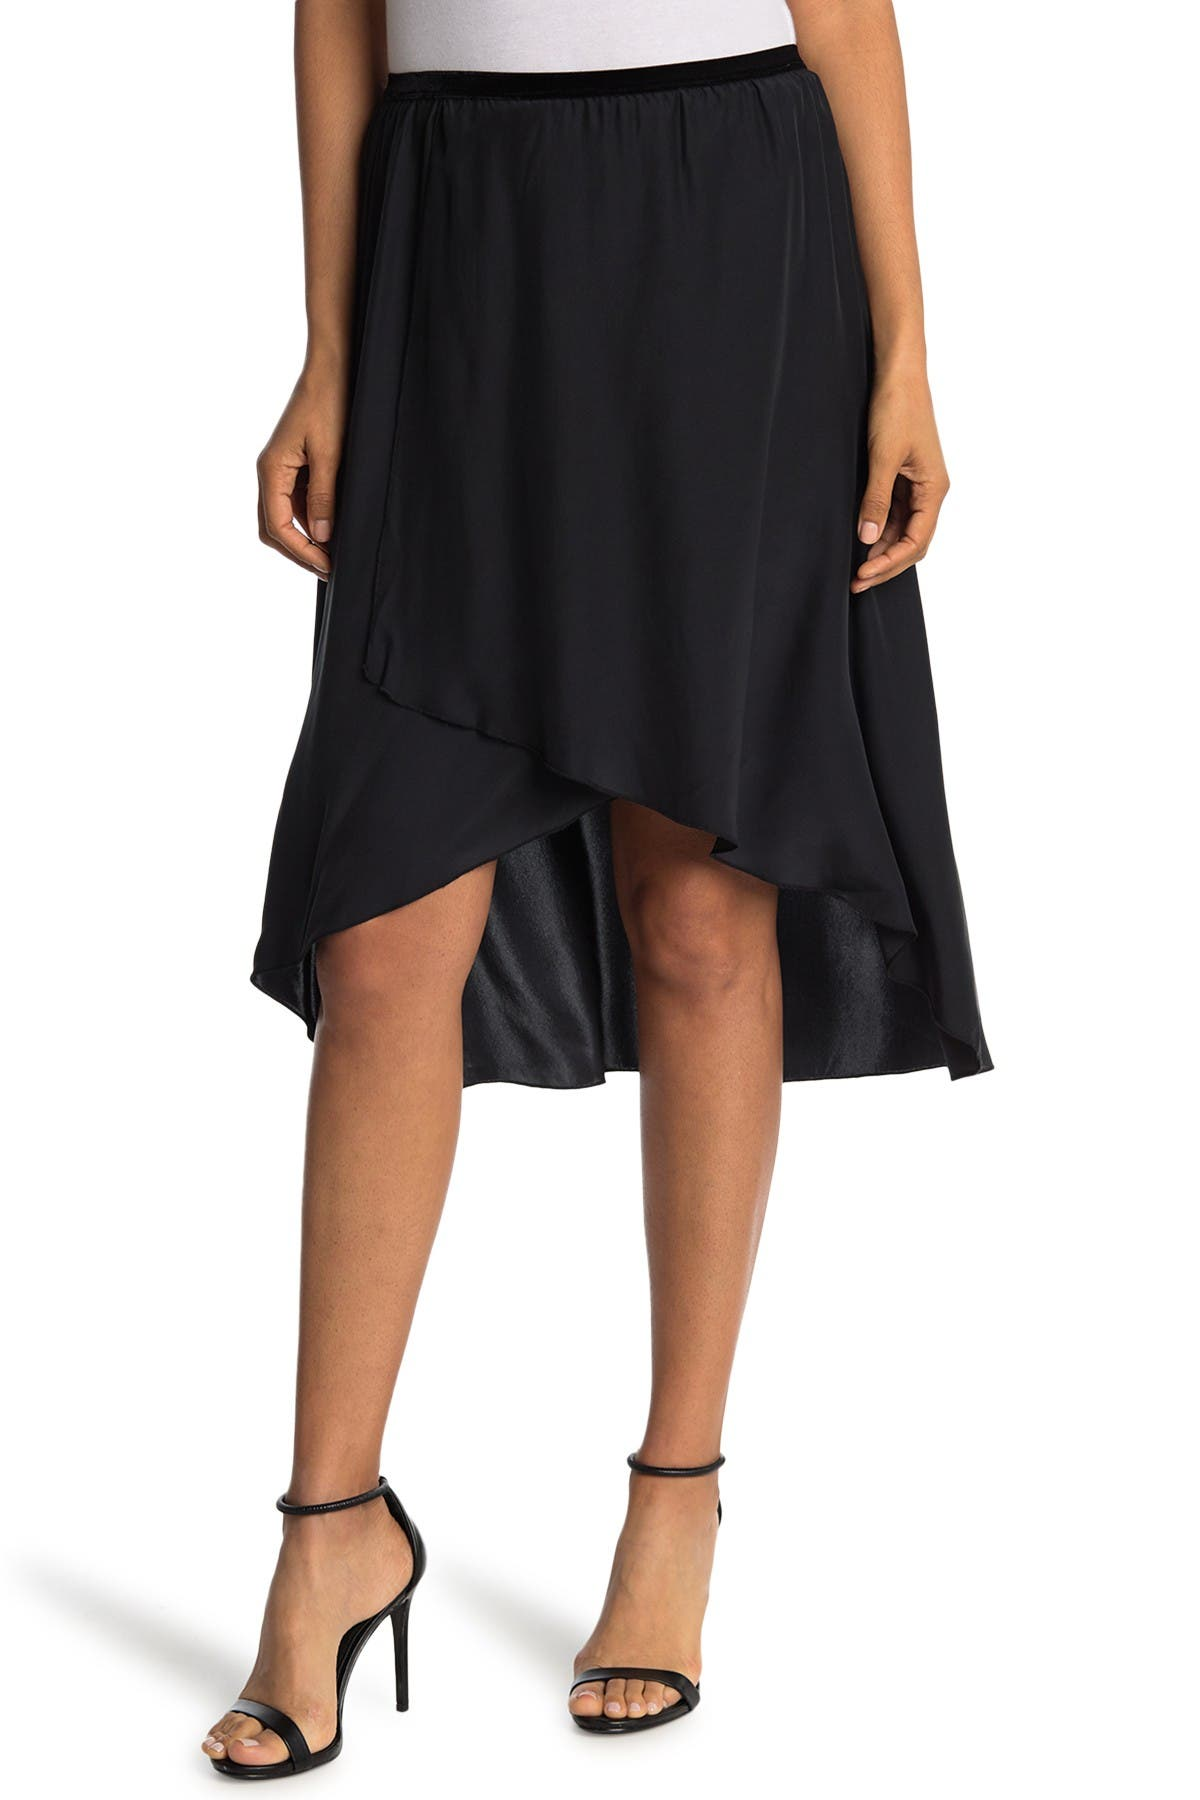 Image of Go by go Silk Go Get Wrapped in Ruffles Silk Skirt